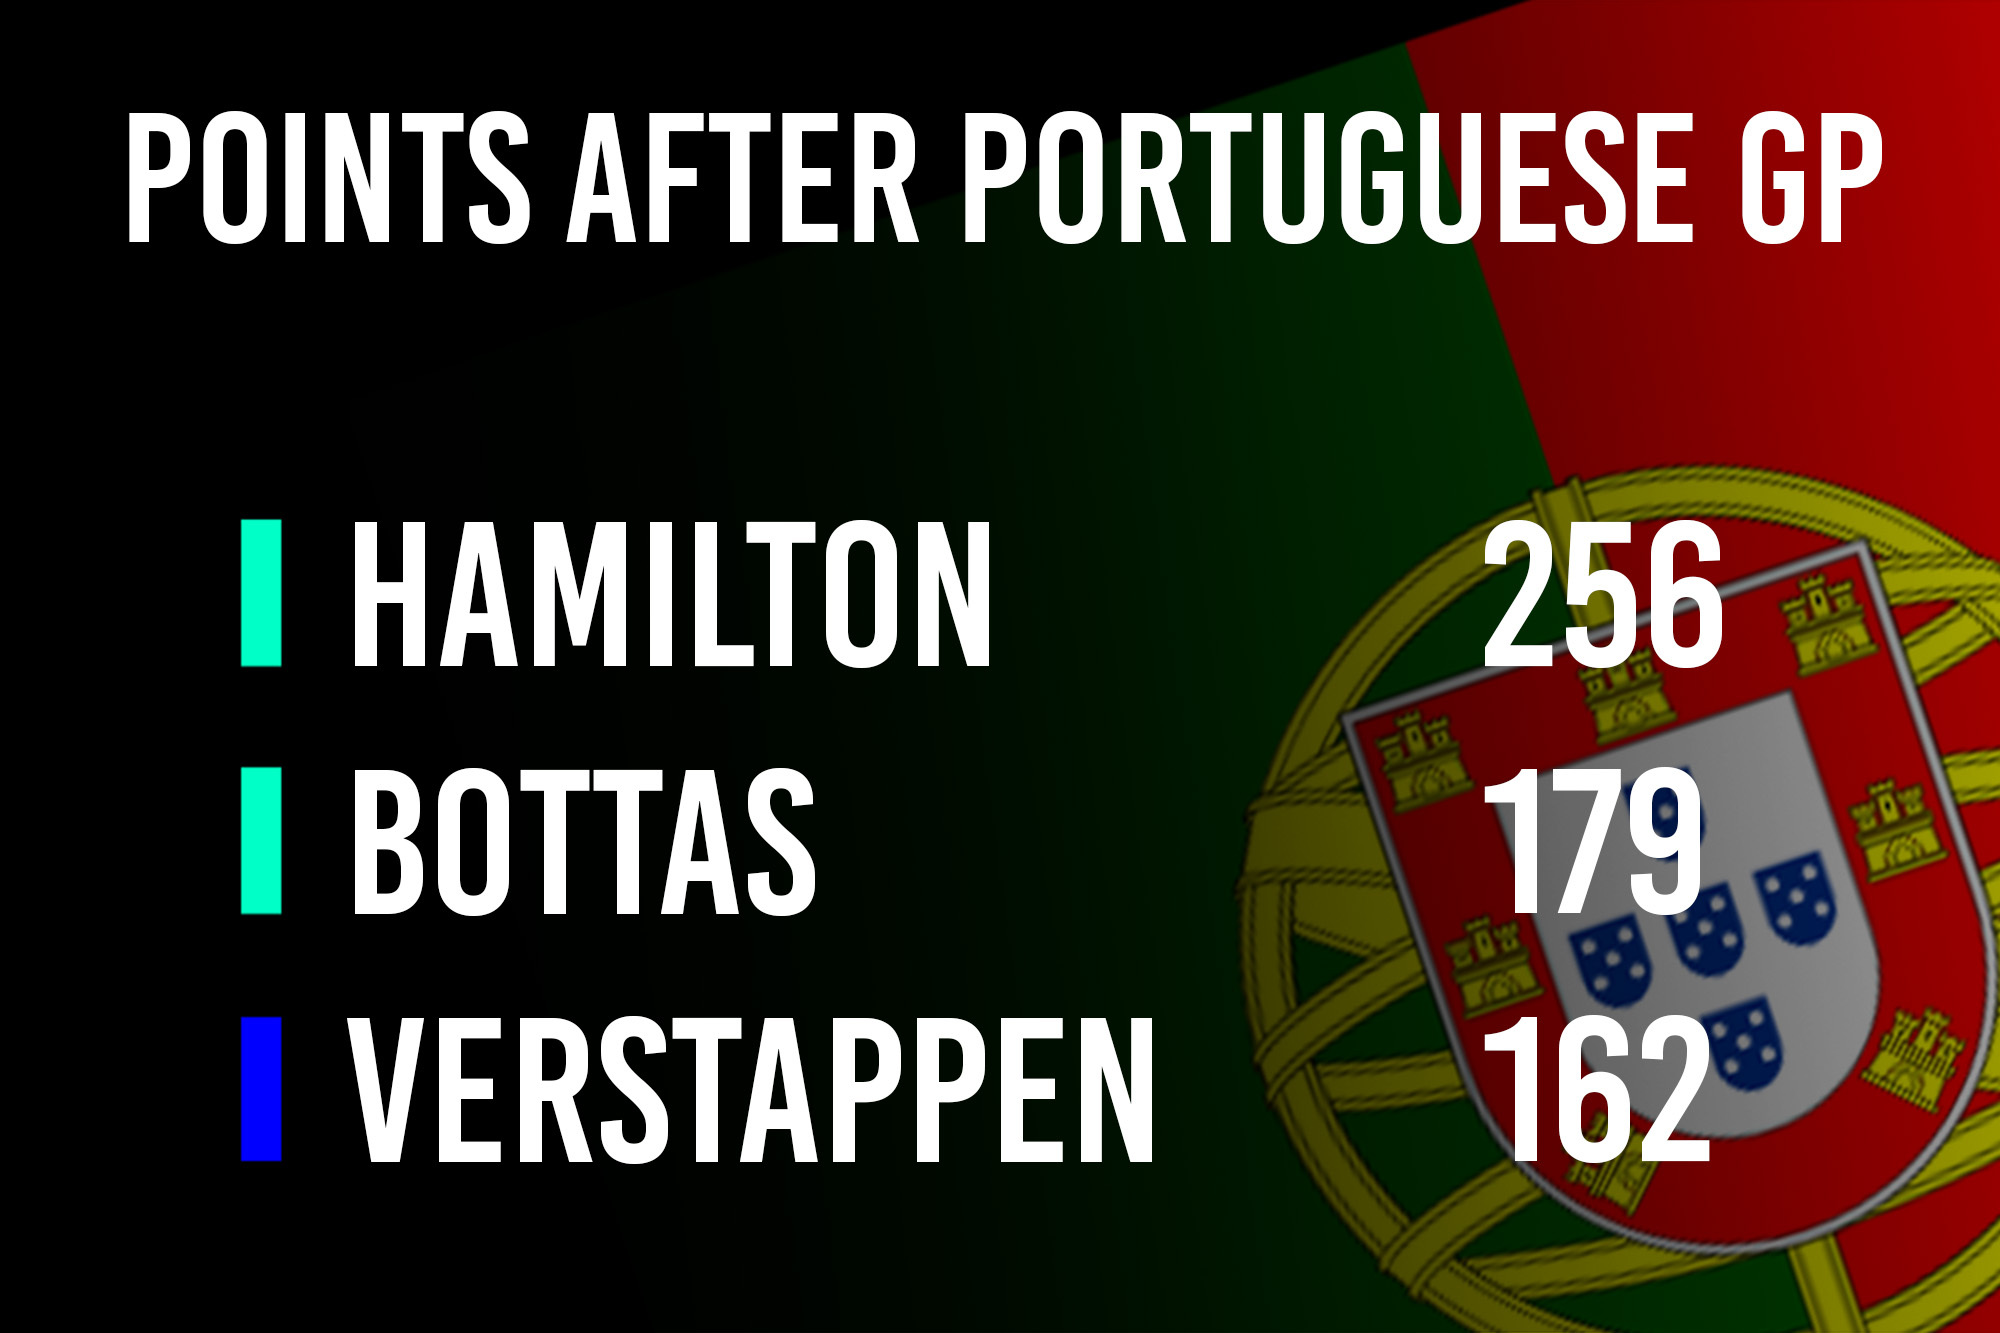 After Portugal